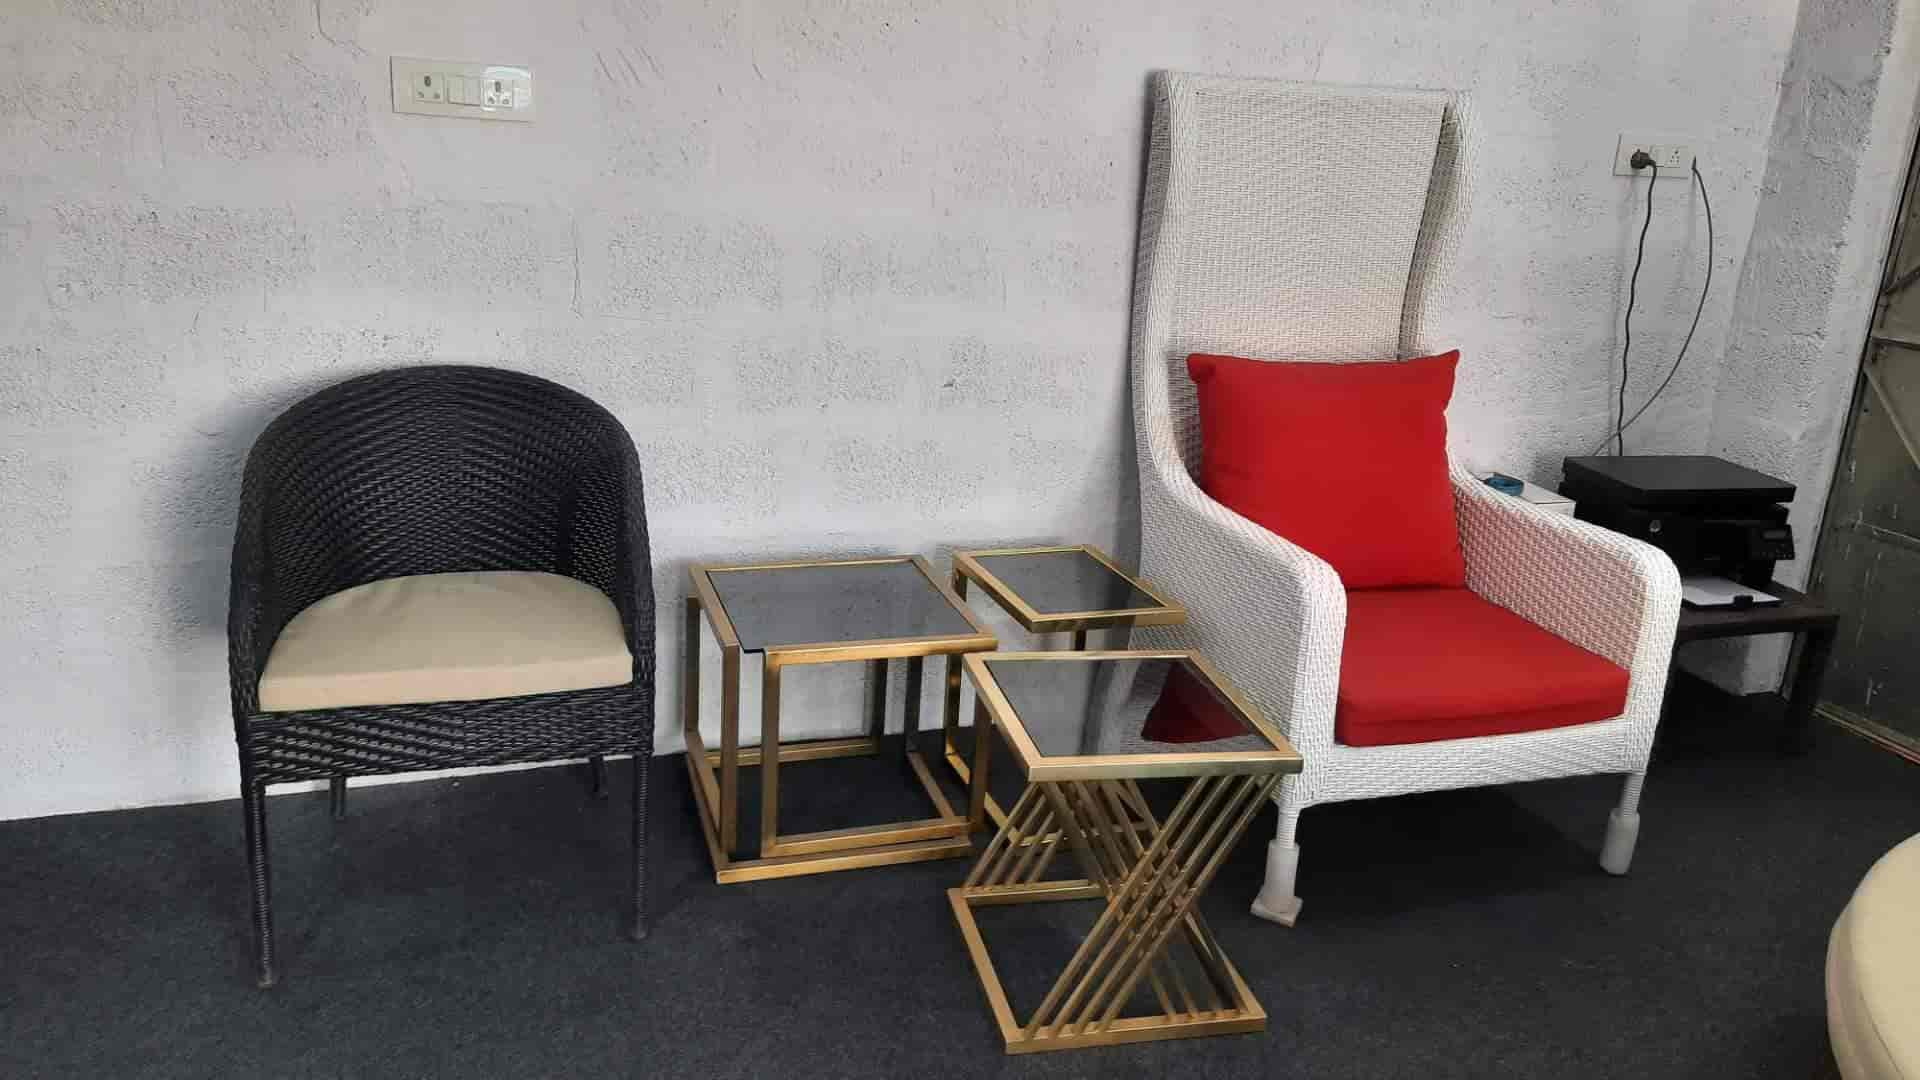 Dreamline Garden Furniture, Vaishali Nagar - Furniture Dealers in